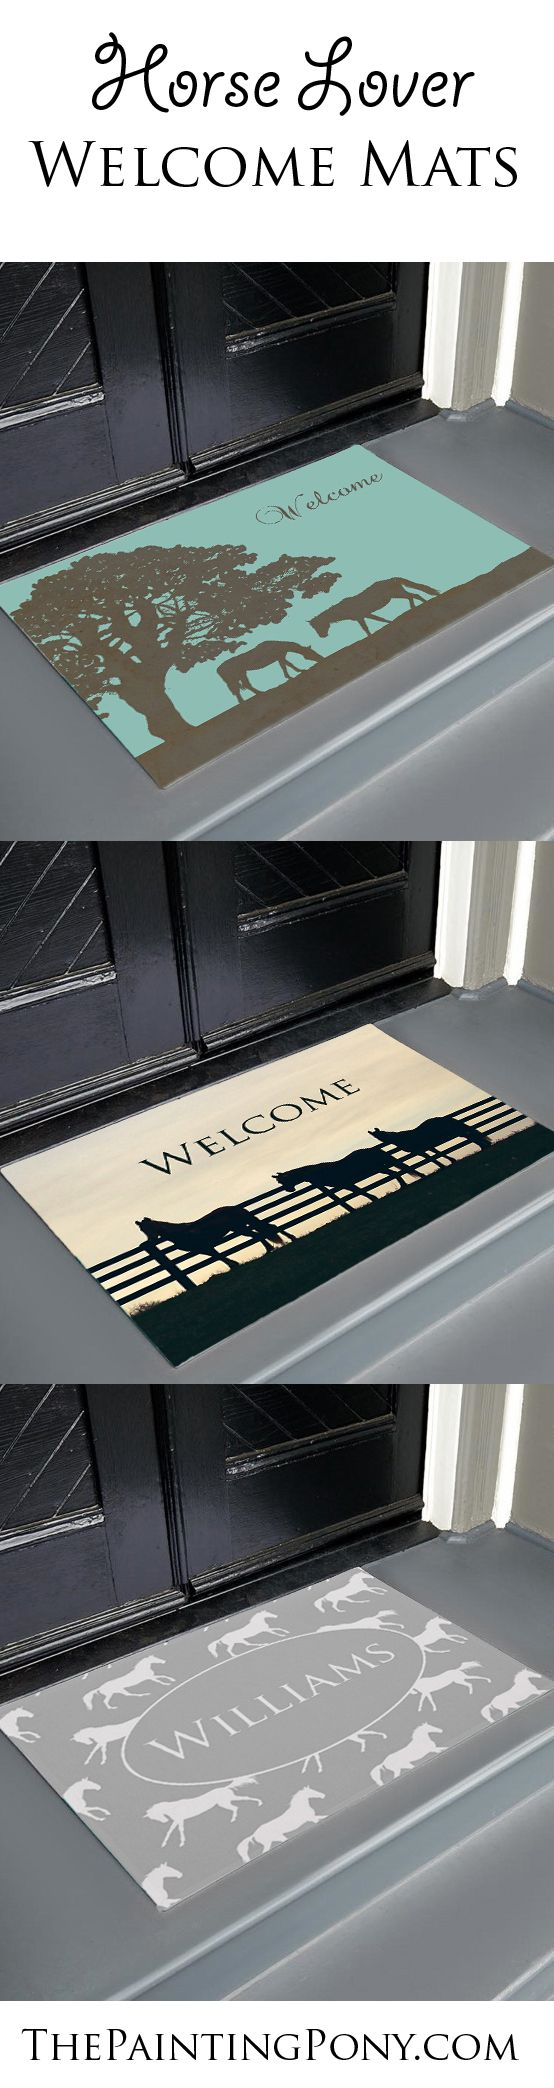 Equestrian Welcome Mats - Dress up your front door at your home, office, or even at the barn with a horse themed mat from The Painting Pony. Our mats are durable and colorful. Customize with your own text or name and custom colors are available upon request too. Any horse lover will enjoy these welcome mats available in two sizes for their home decor. Would also be good for the barn or stable farm tack room.